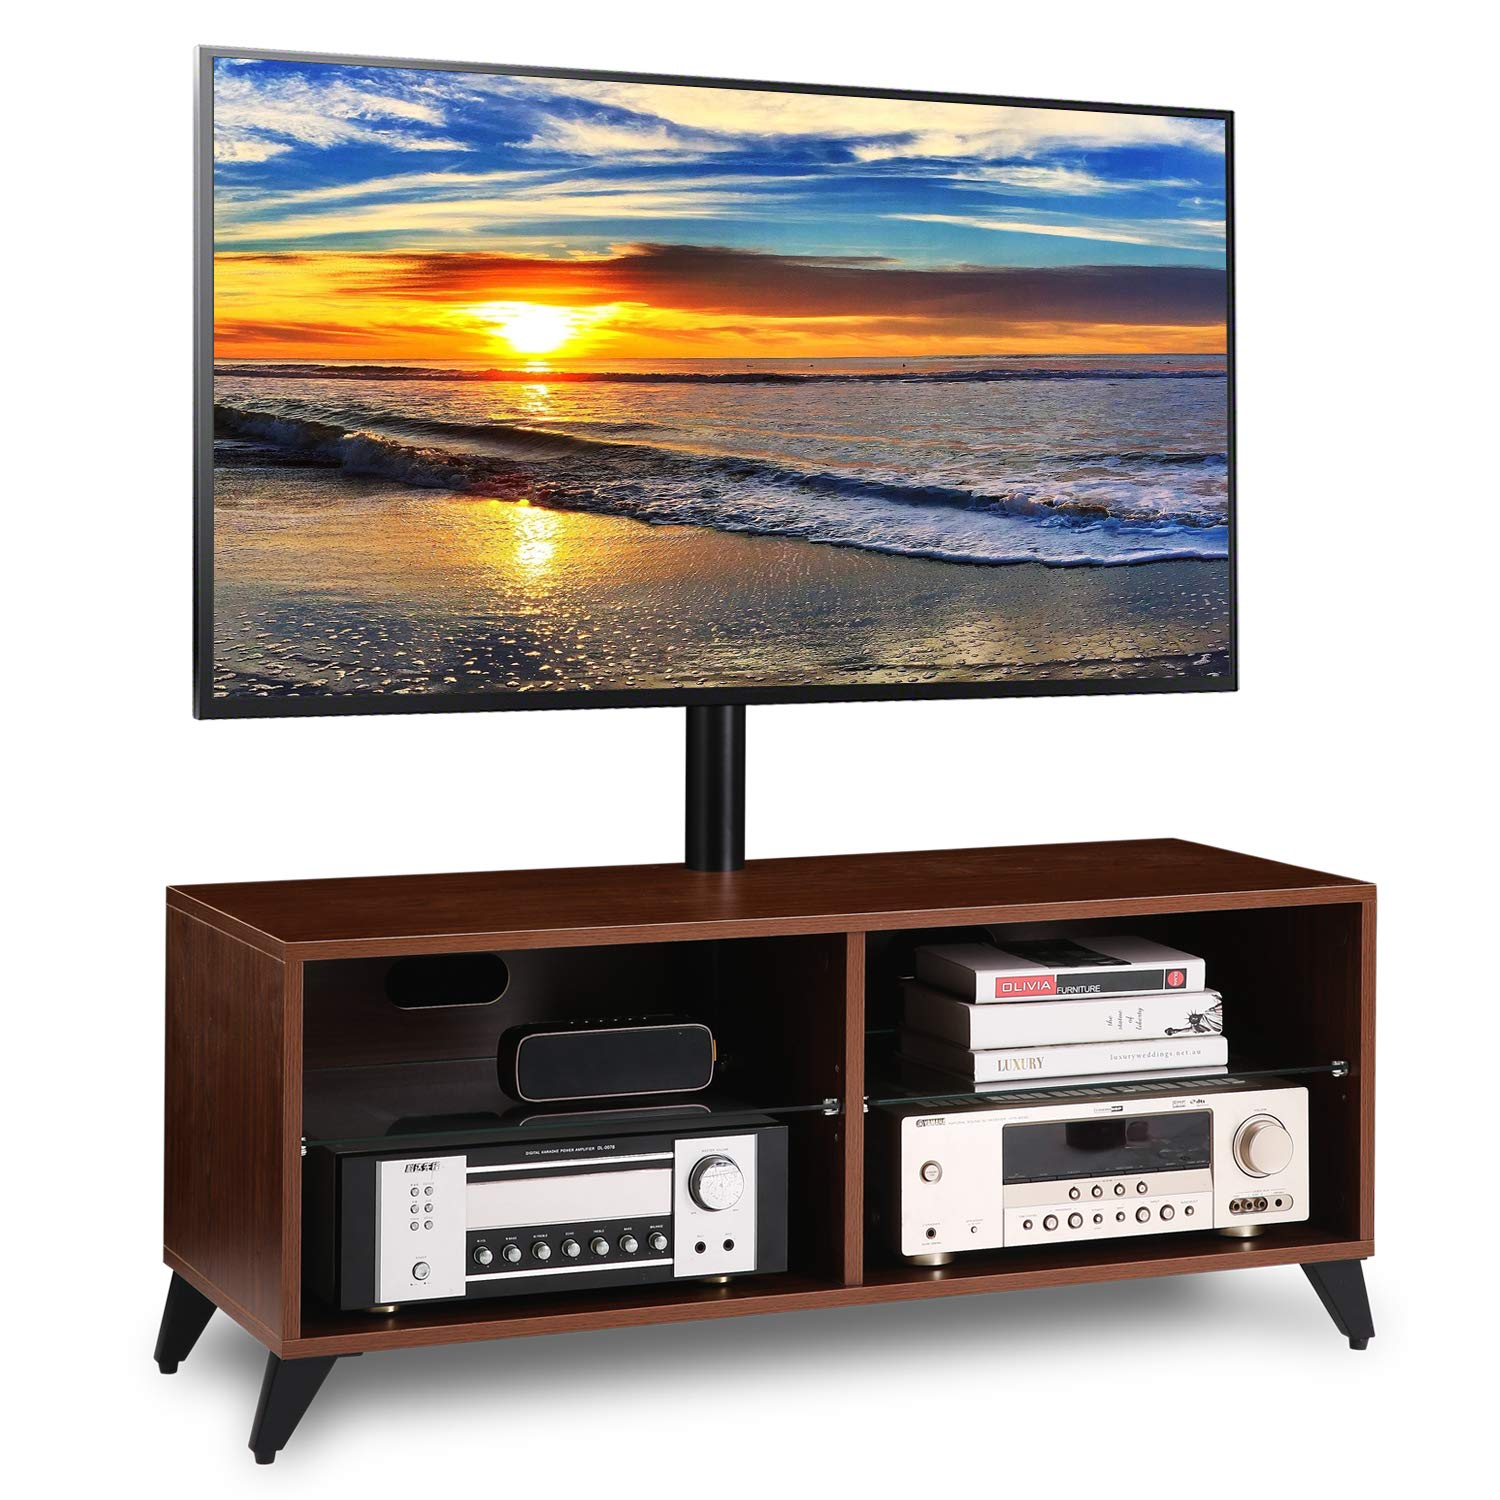 5Rcom Universal Floor Wood TV Stand Console with Swivel Mount for 32 37 42 47 50 55 60 65 inch LCD LED OLED QLED Flat Panel and Curved Screen TVs Height Adjustable Storage Shelf for Media,Walnut by 5Rcom